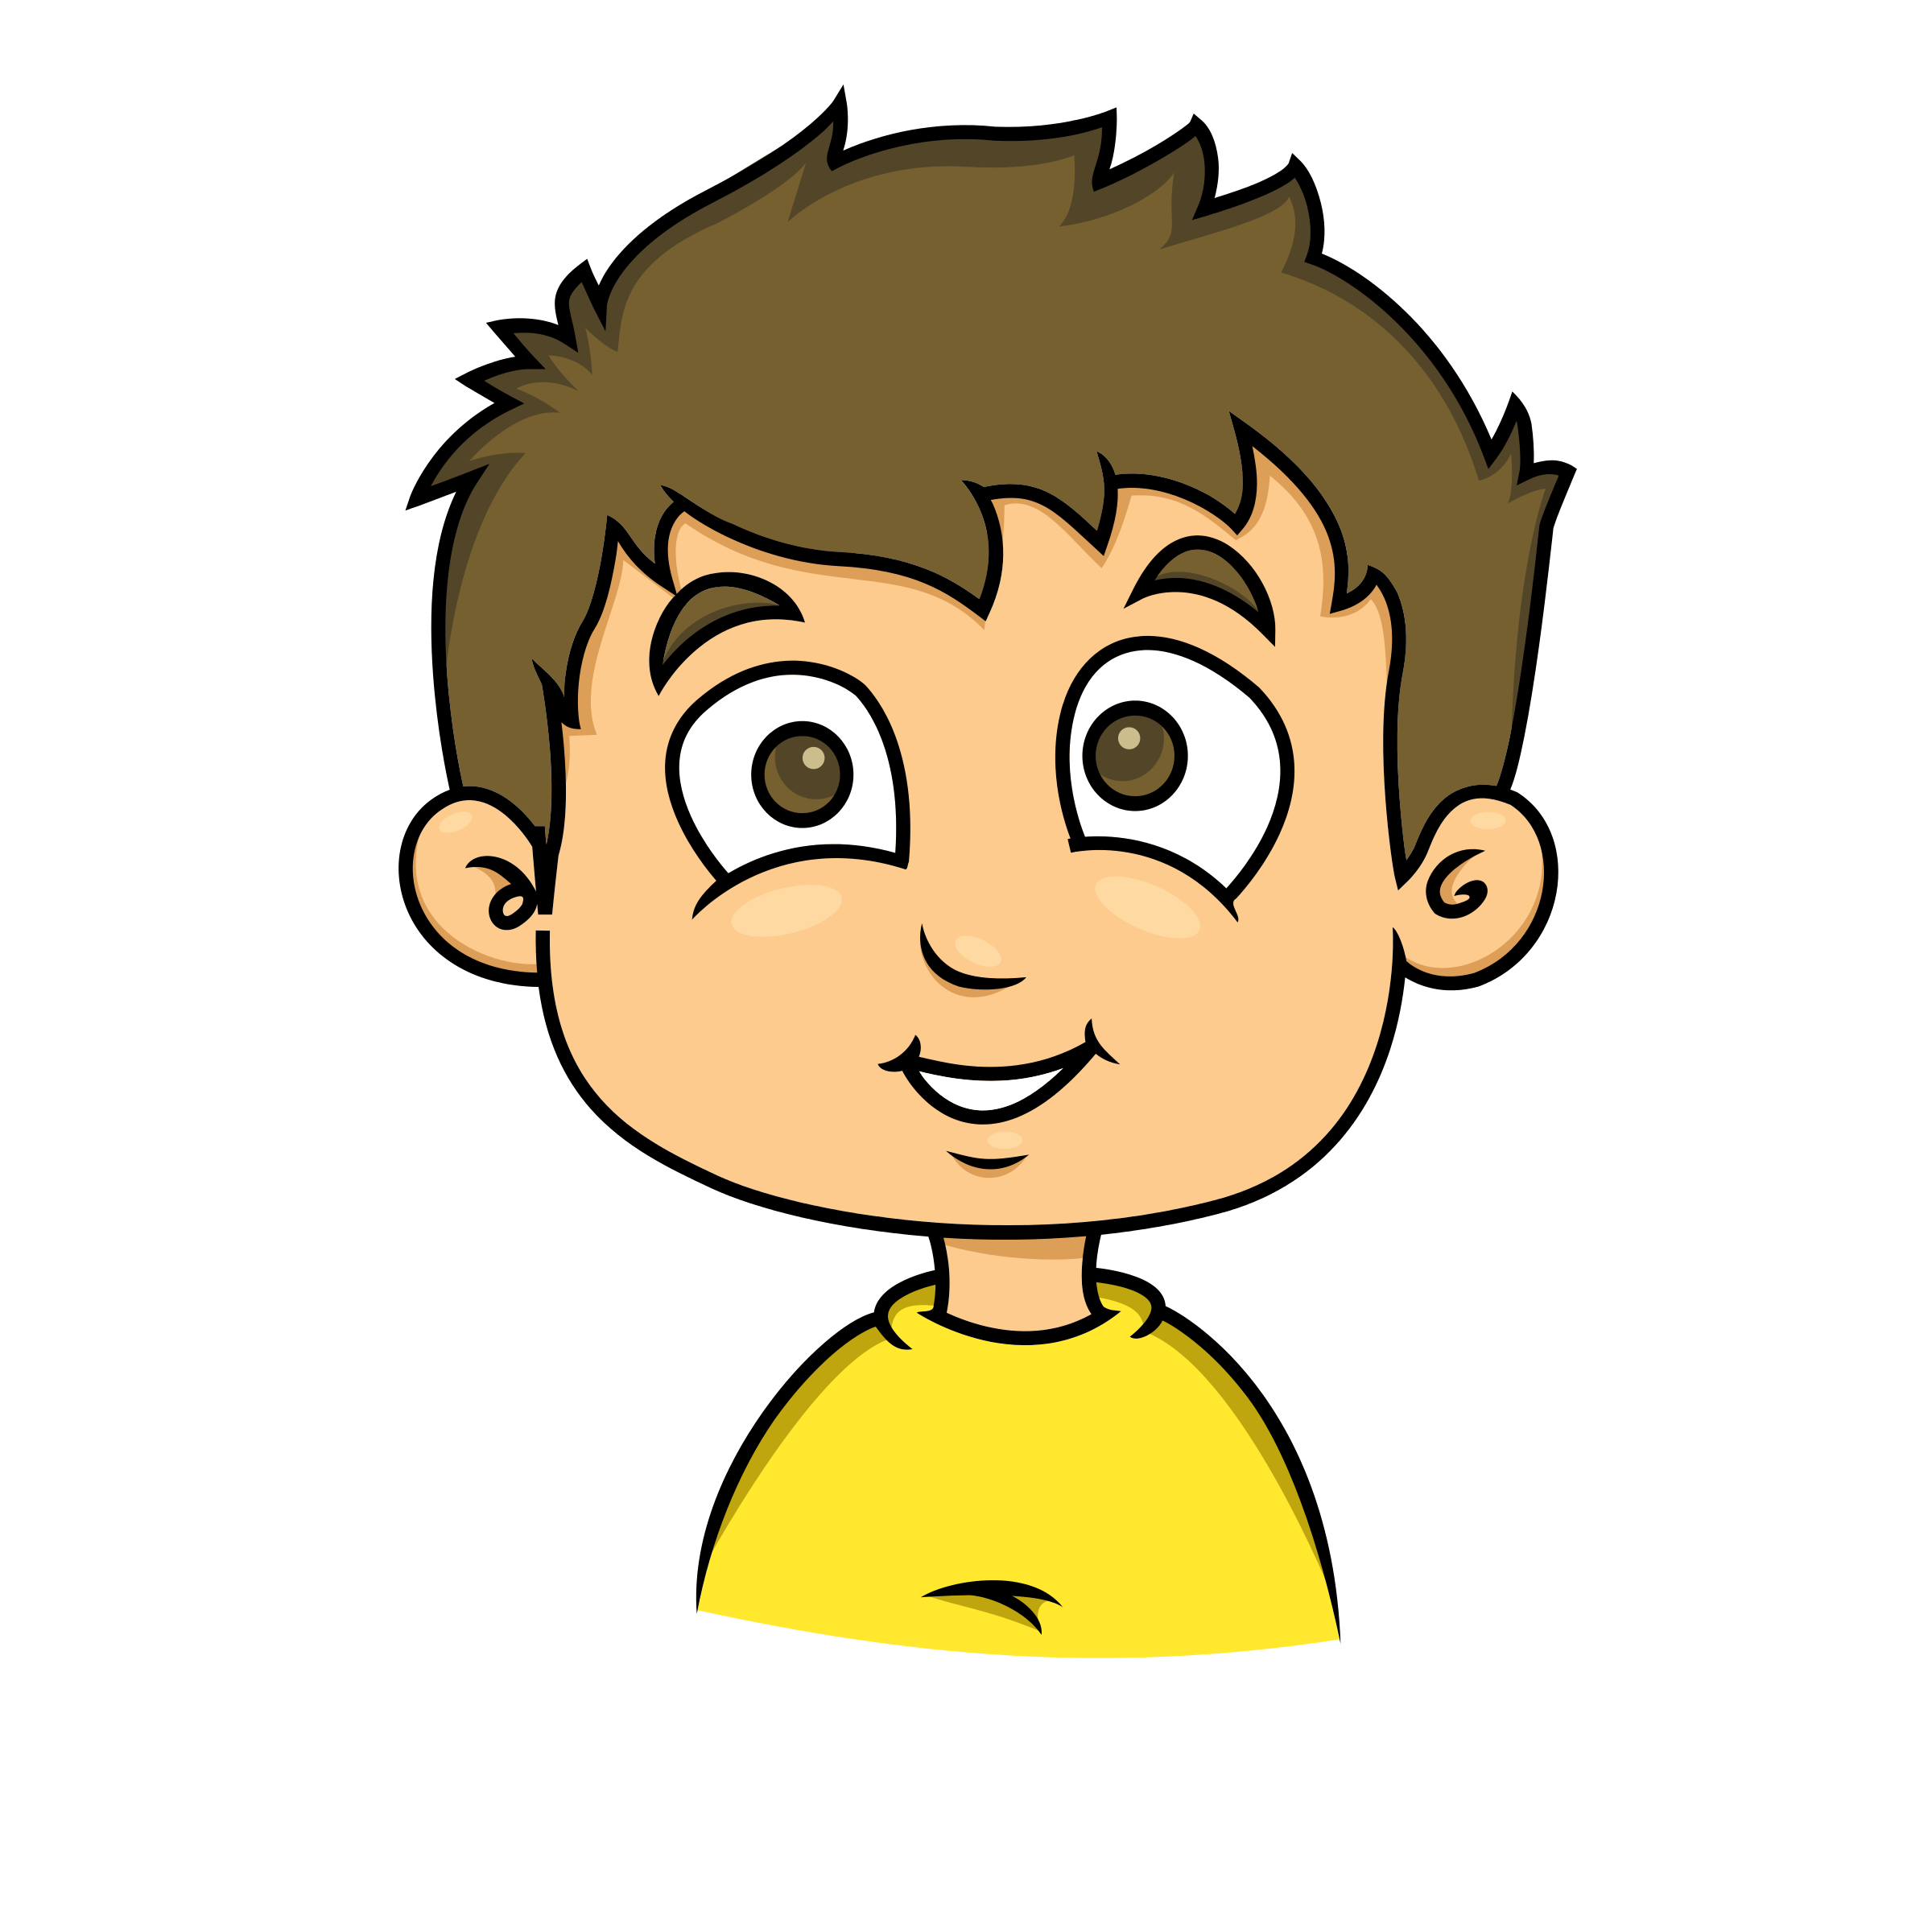 Child clipart #16, Download drawings